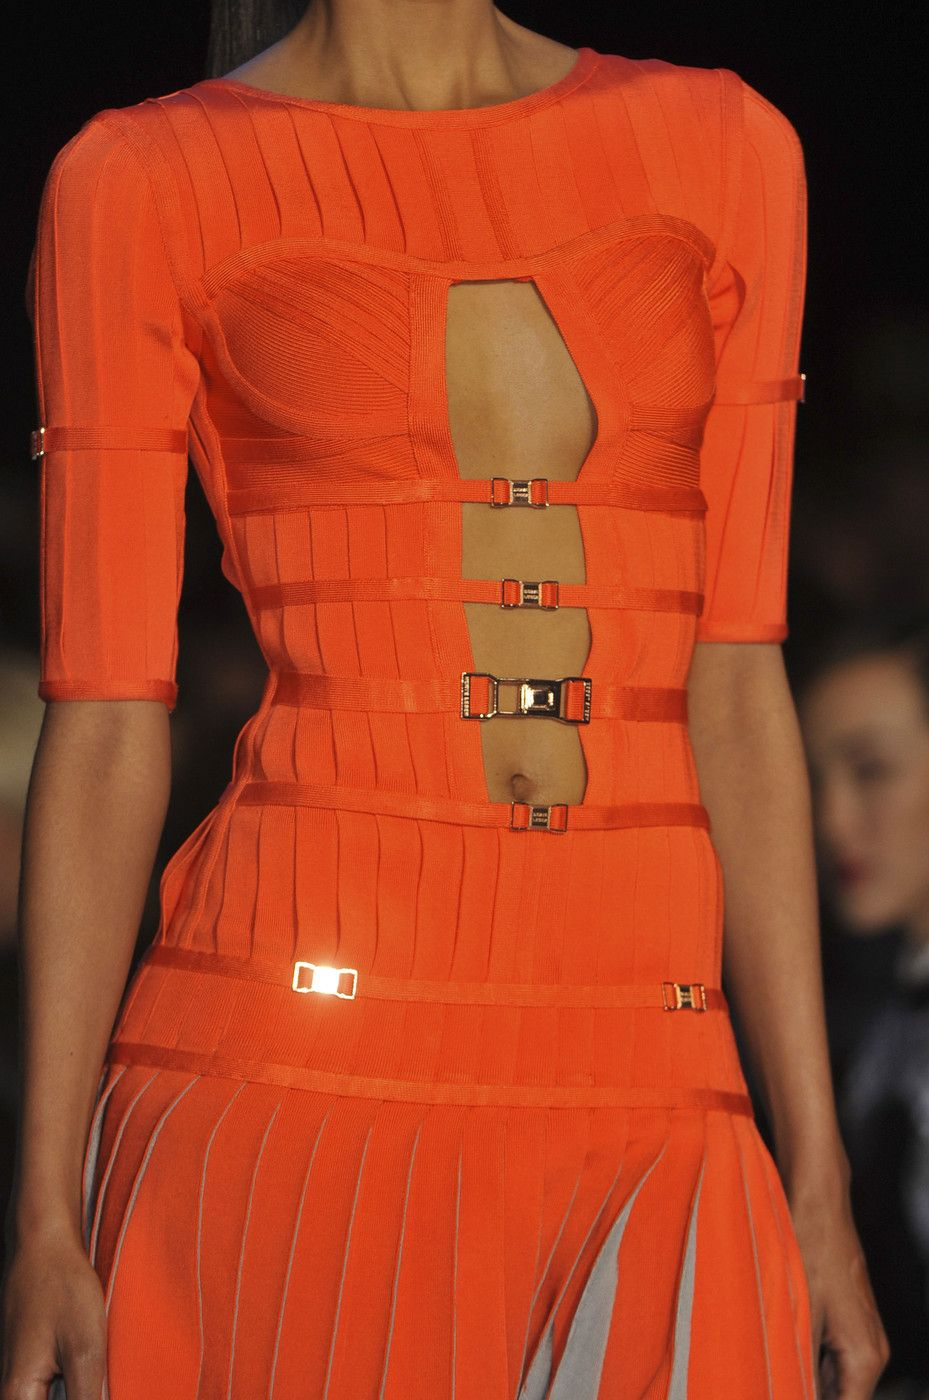 Herve Leger by Max Azria FW 14-Need to book a flight, hotel, cruise or rental car? Shop with me! I am open 24 hours a day.If you're already traveling anyway, you might as well do it at a discount, PLUS write it off on your taxes!! Come see how! http://freedomflyers.paycation.com  Lets talk about being free and having cash flow. Email me at mrs.simpson42120@gmail.com